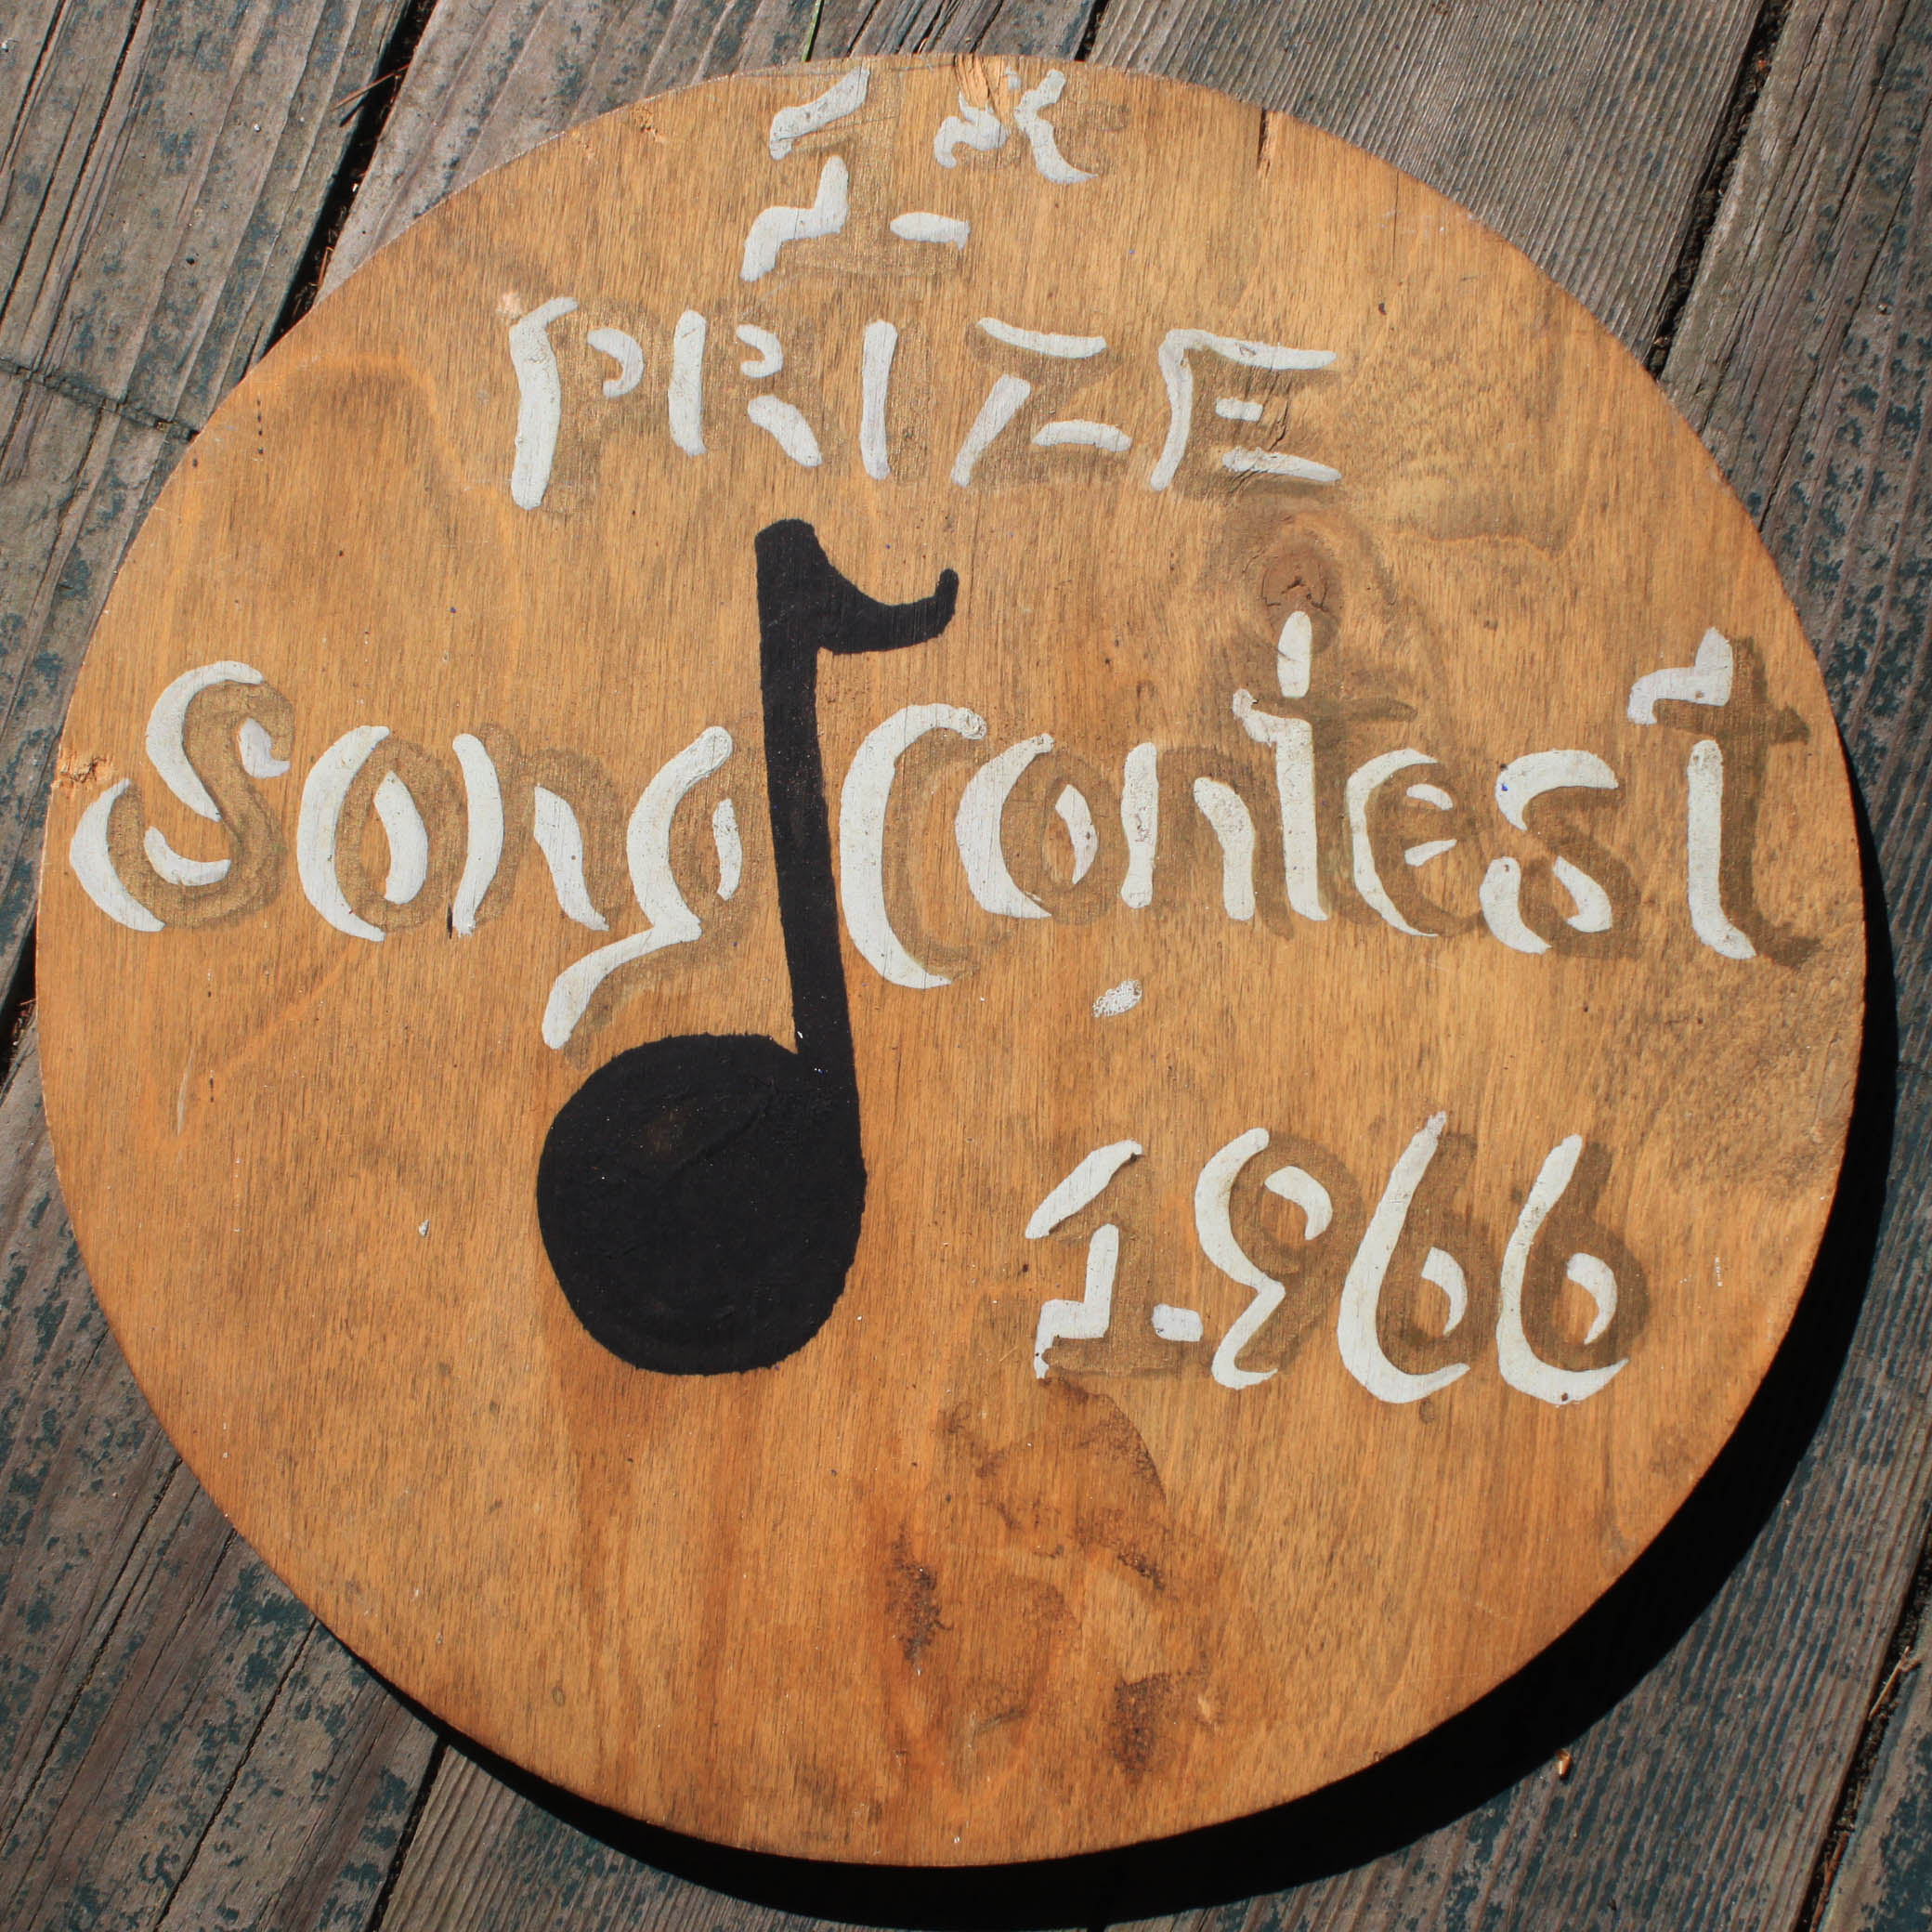 song-contest-1966-front_30538237218_o.jpg